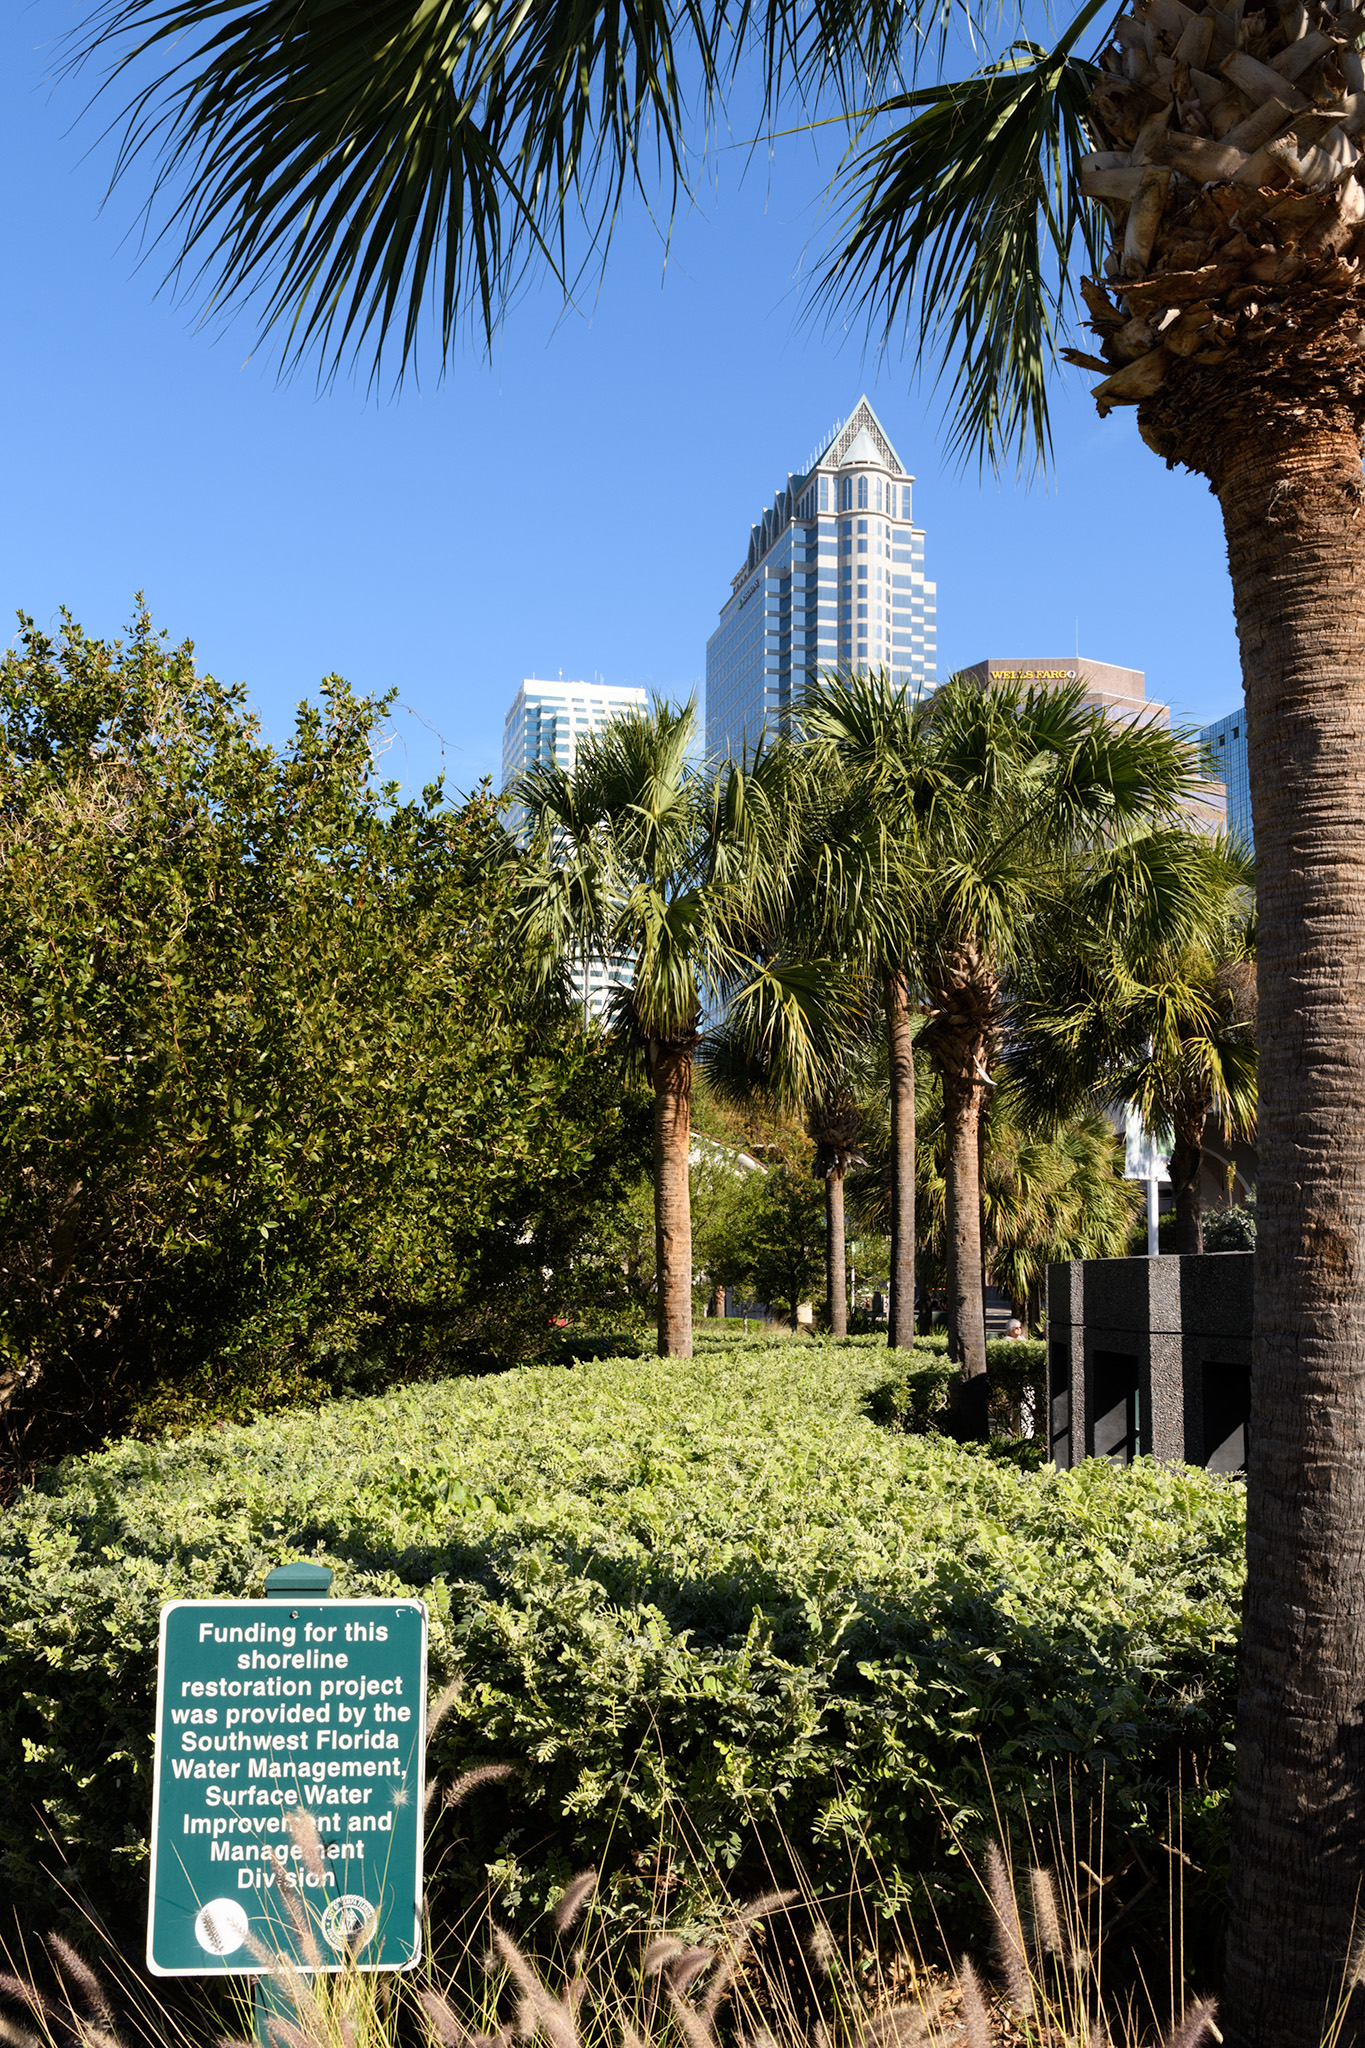 20170311 - Tampa Riverwalk - 028.jpg